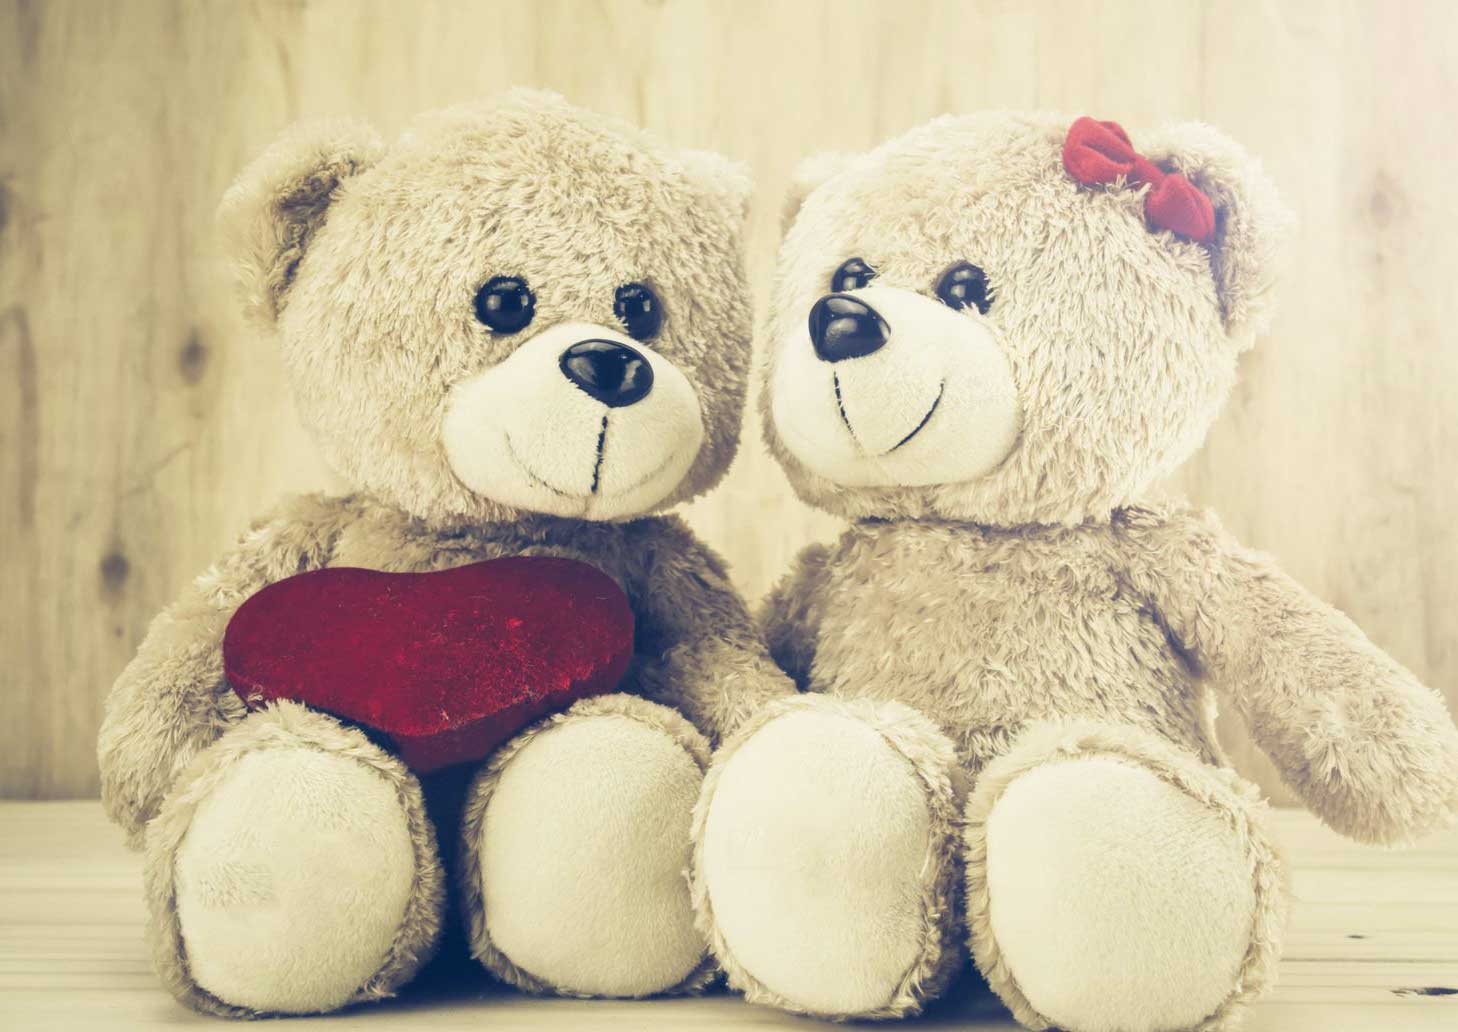 Beautiful Teddy Bear Images Pics HD Pics Photo Download